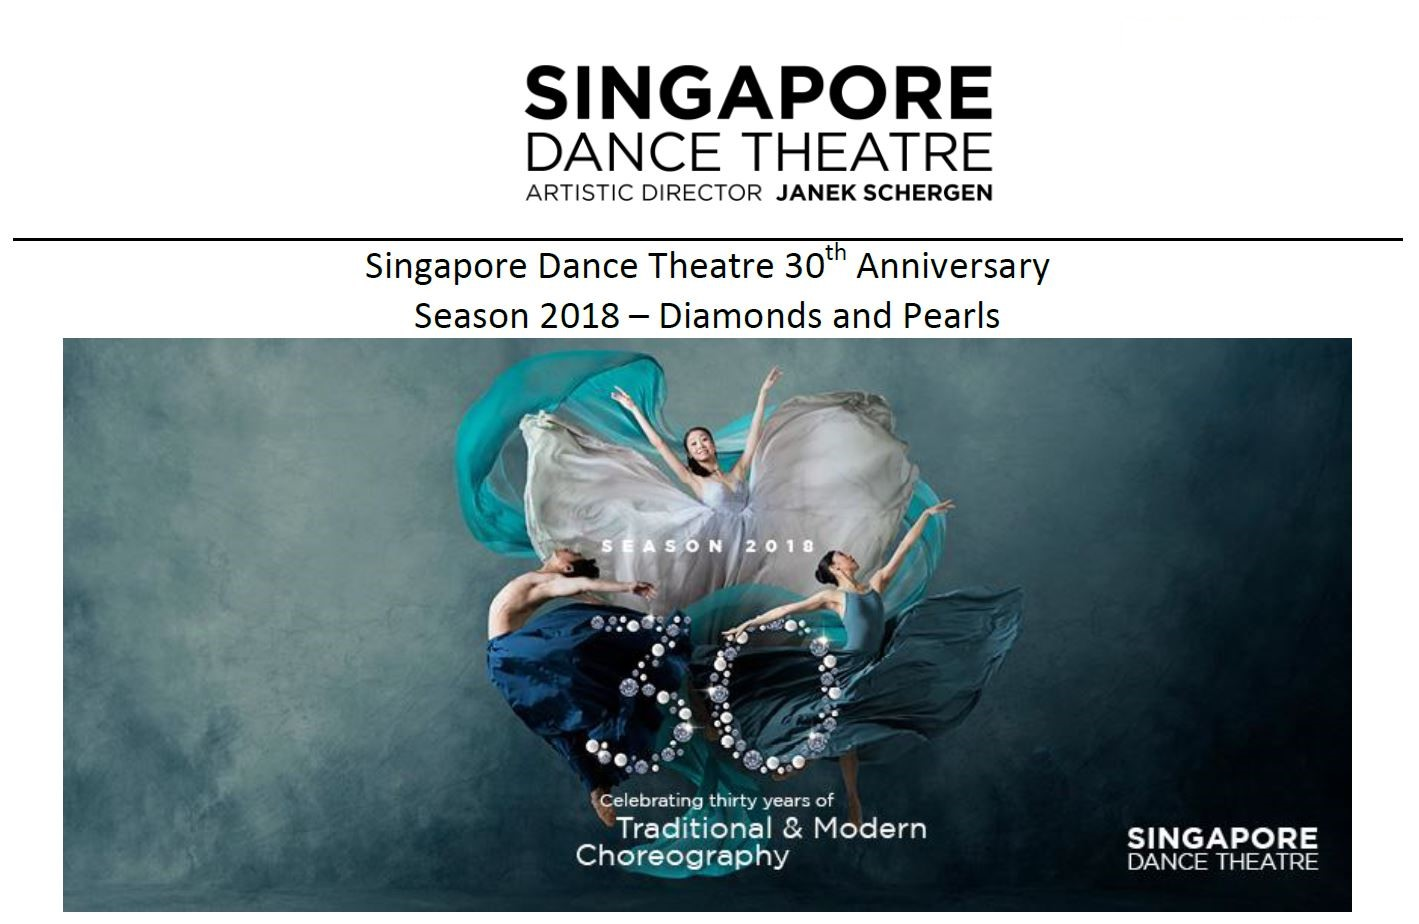 We are honoured to be the official textile recycling partner of Singapore Dance Theatre (SDT). We are looking forward to working with an organisation which plays such a large part in Singapore's arts culture. In conjunction with their 30th anniversary, SDT is making sustainability part of their corporate identity.  We hope to see more organisations step forward to make corporate social responsibility and environmental stewardship part of their mission!